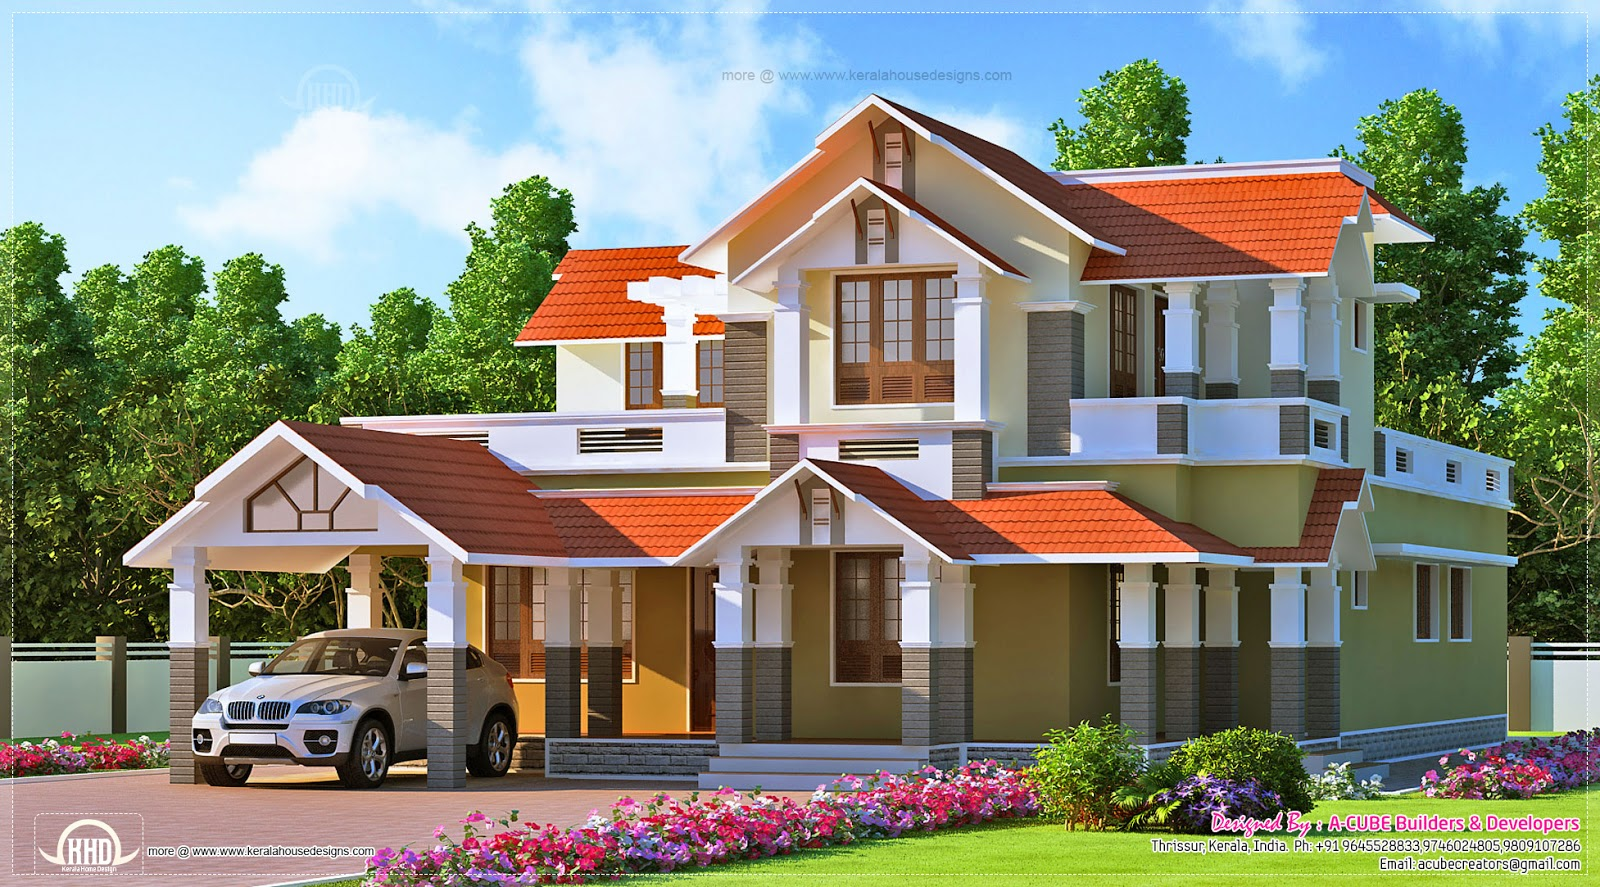 Kerala style dream home design in 2900 kerala for Dream home house plans